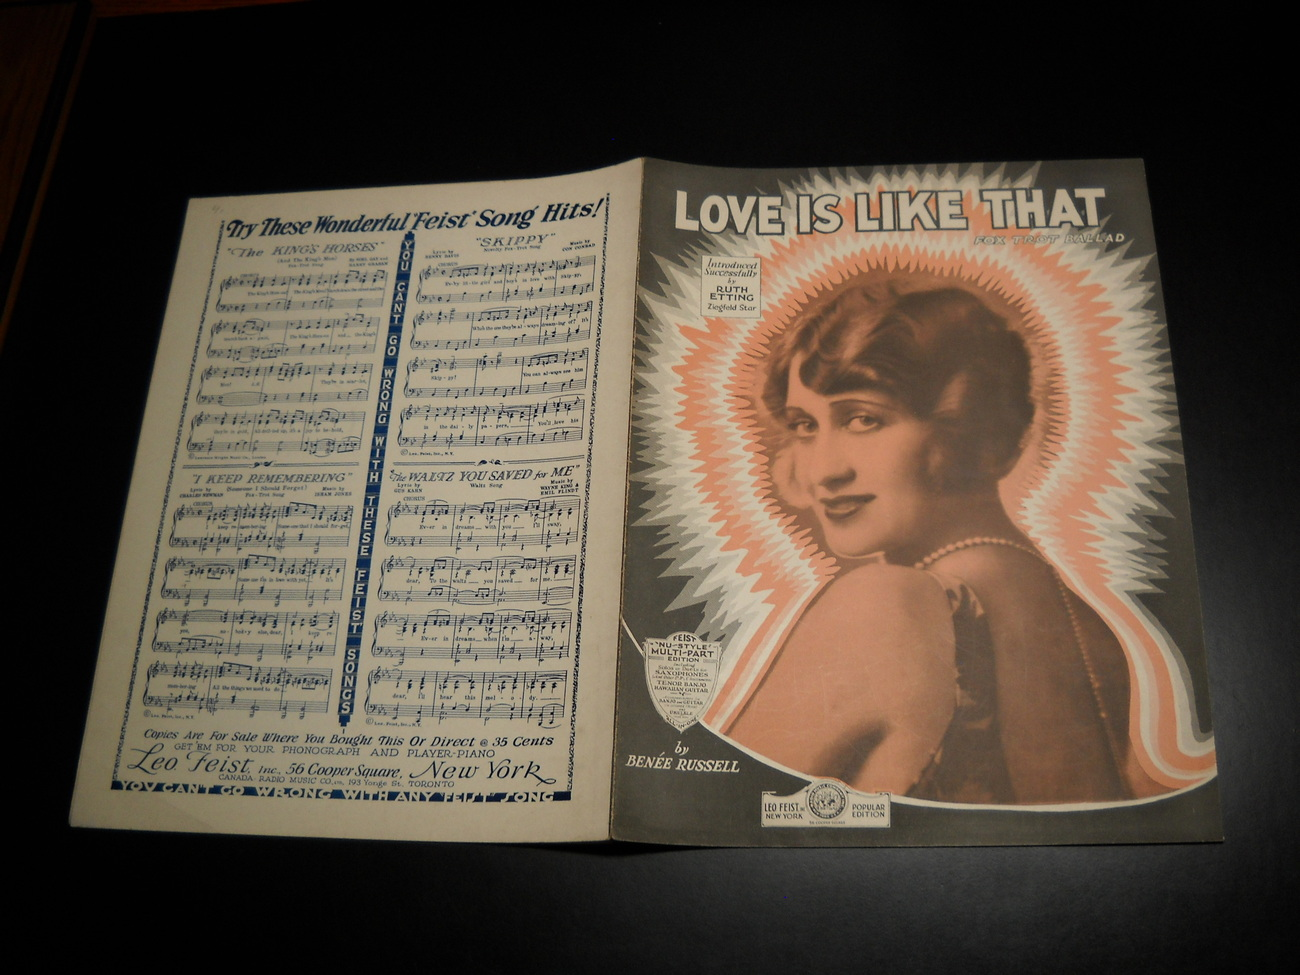 Sheet_music_love_is_like_that_ruth_etting_benee_russell_1931_leo_feist_02